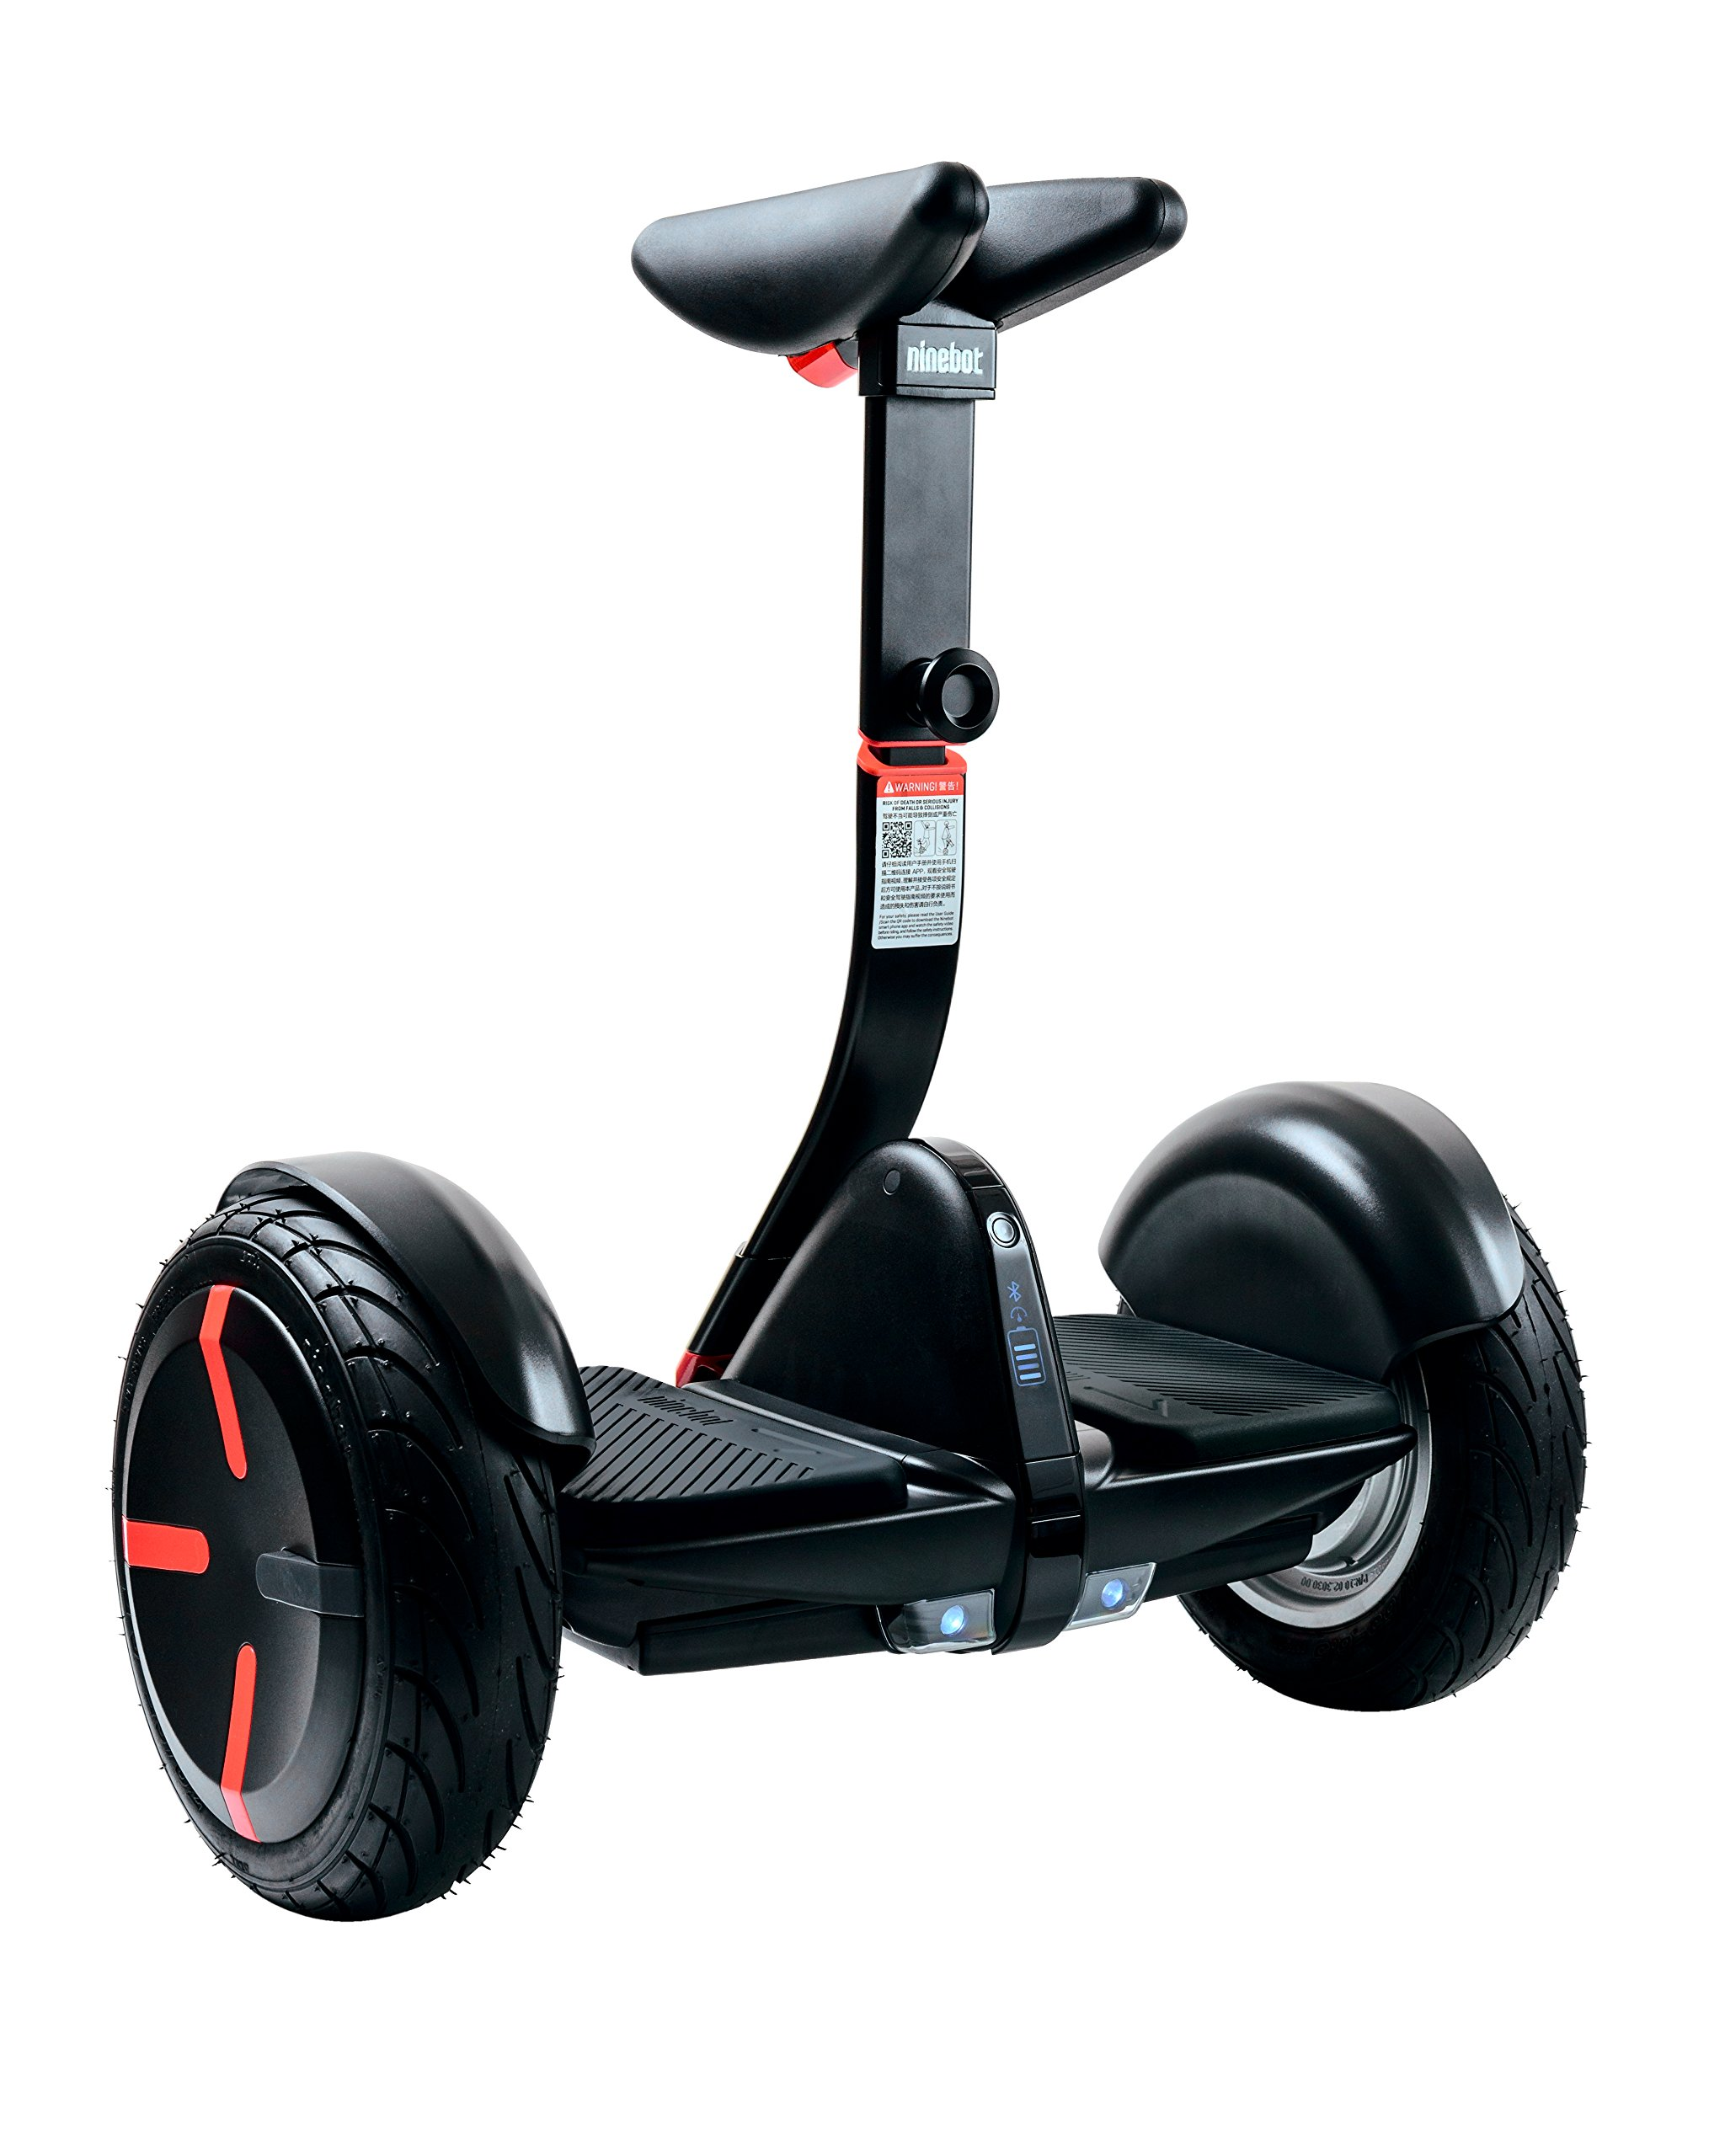 SEGWAY miniPRO Smart Self-Balancing Transporter | Adjustable and Removeable Steering Bar, 10.5-Inch Pneumatic Air Filled Tires, Dual 400W Motor, Mobile App, LED Lights, UL2272 Certified by Segway (Image #1)